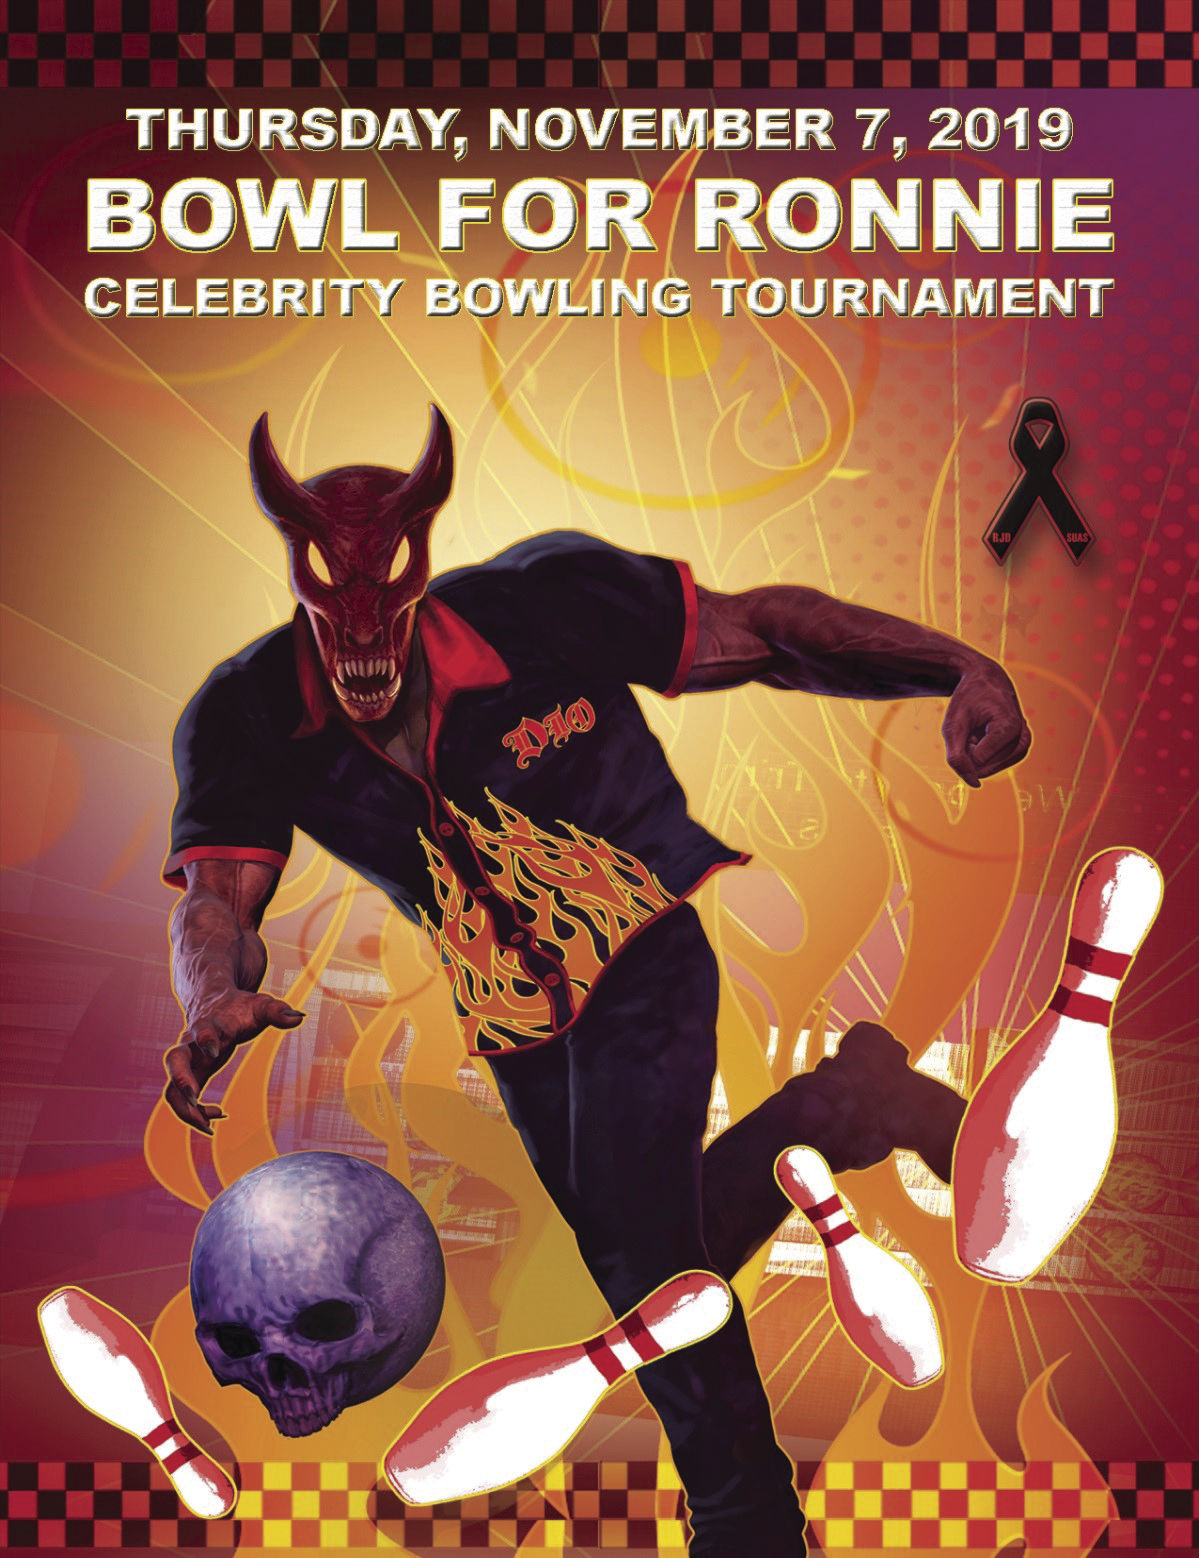 Bowl For Ronnie